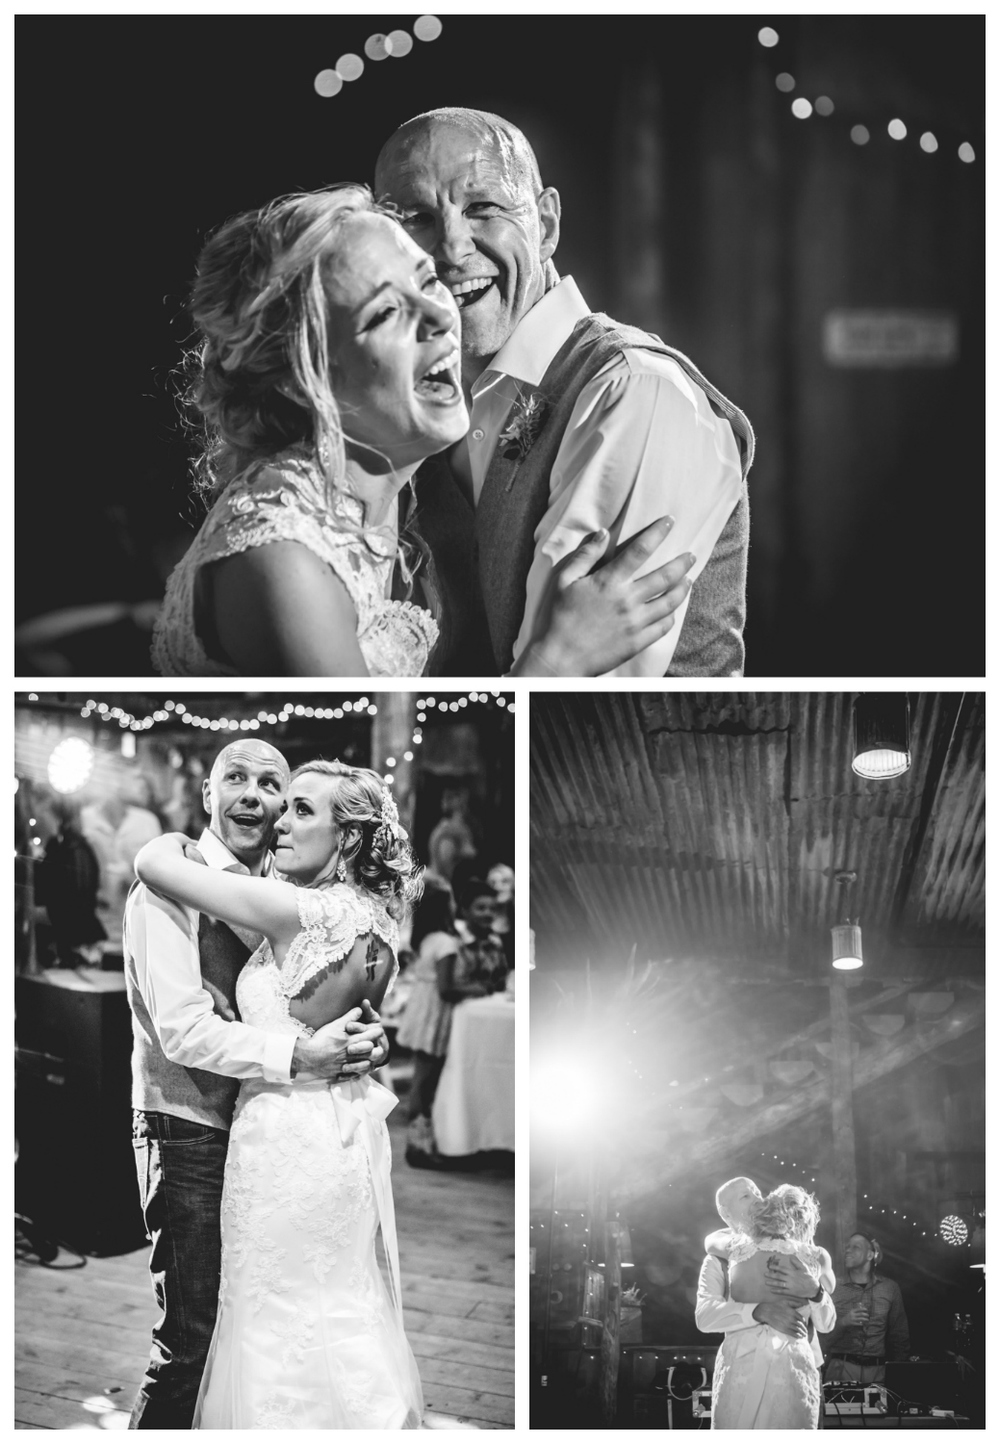 Father daughter dance.Wedding at The barn at Evergreen Memorial. Photographed by JMGant Photography.